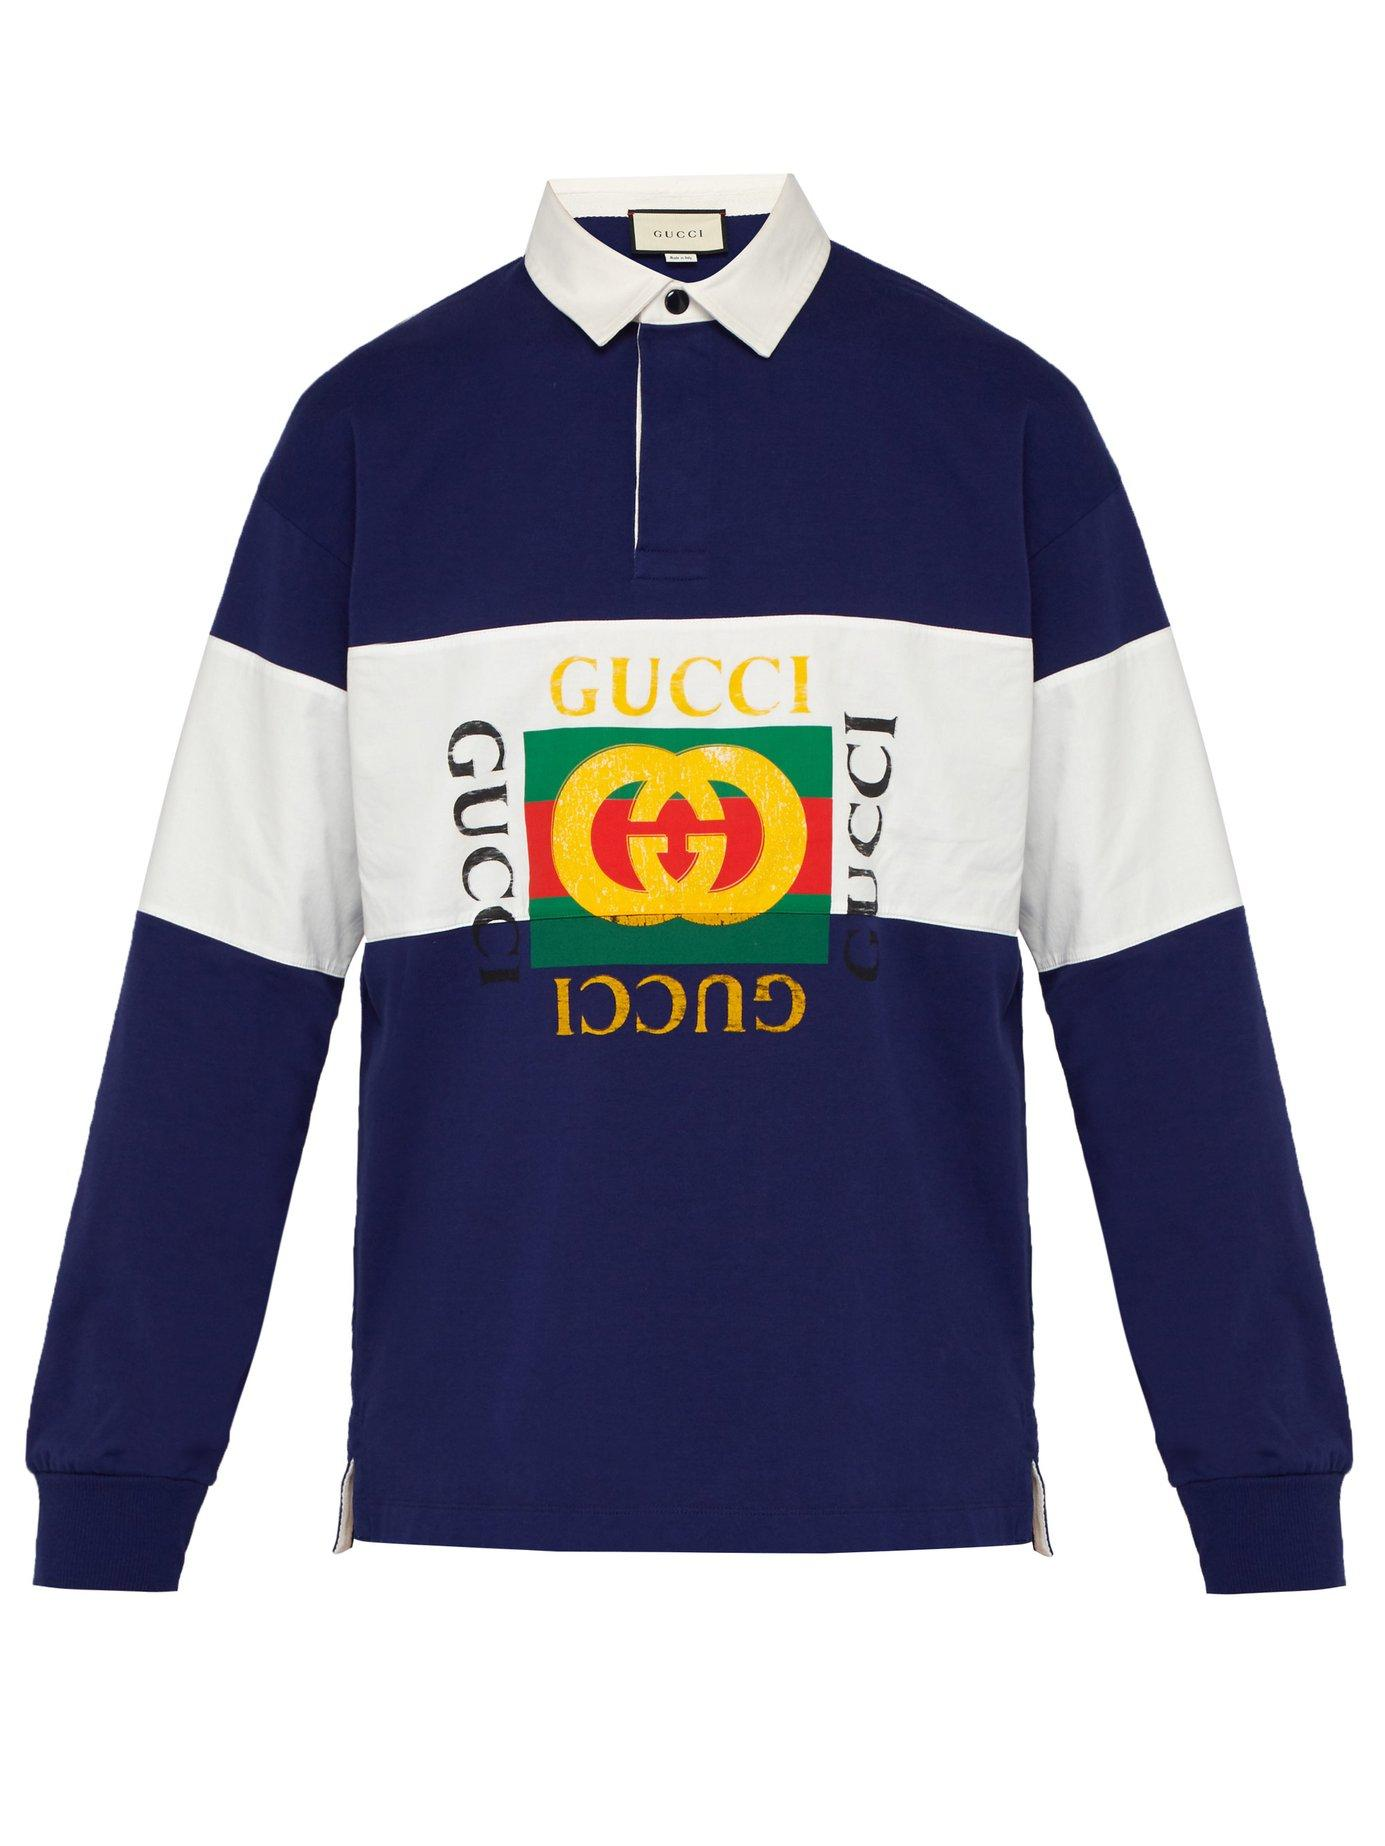 2f37bc5f695 Gucci - Blue Fake Logo Cotton Jersey Rugby Shirt for Men - Lyst. View  fullscreen